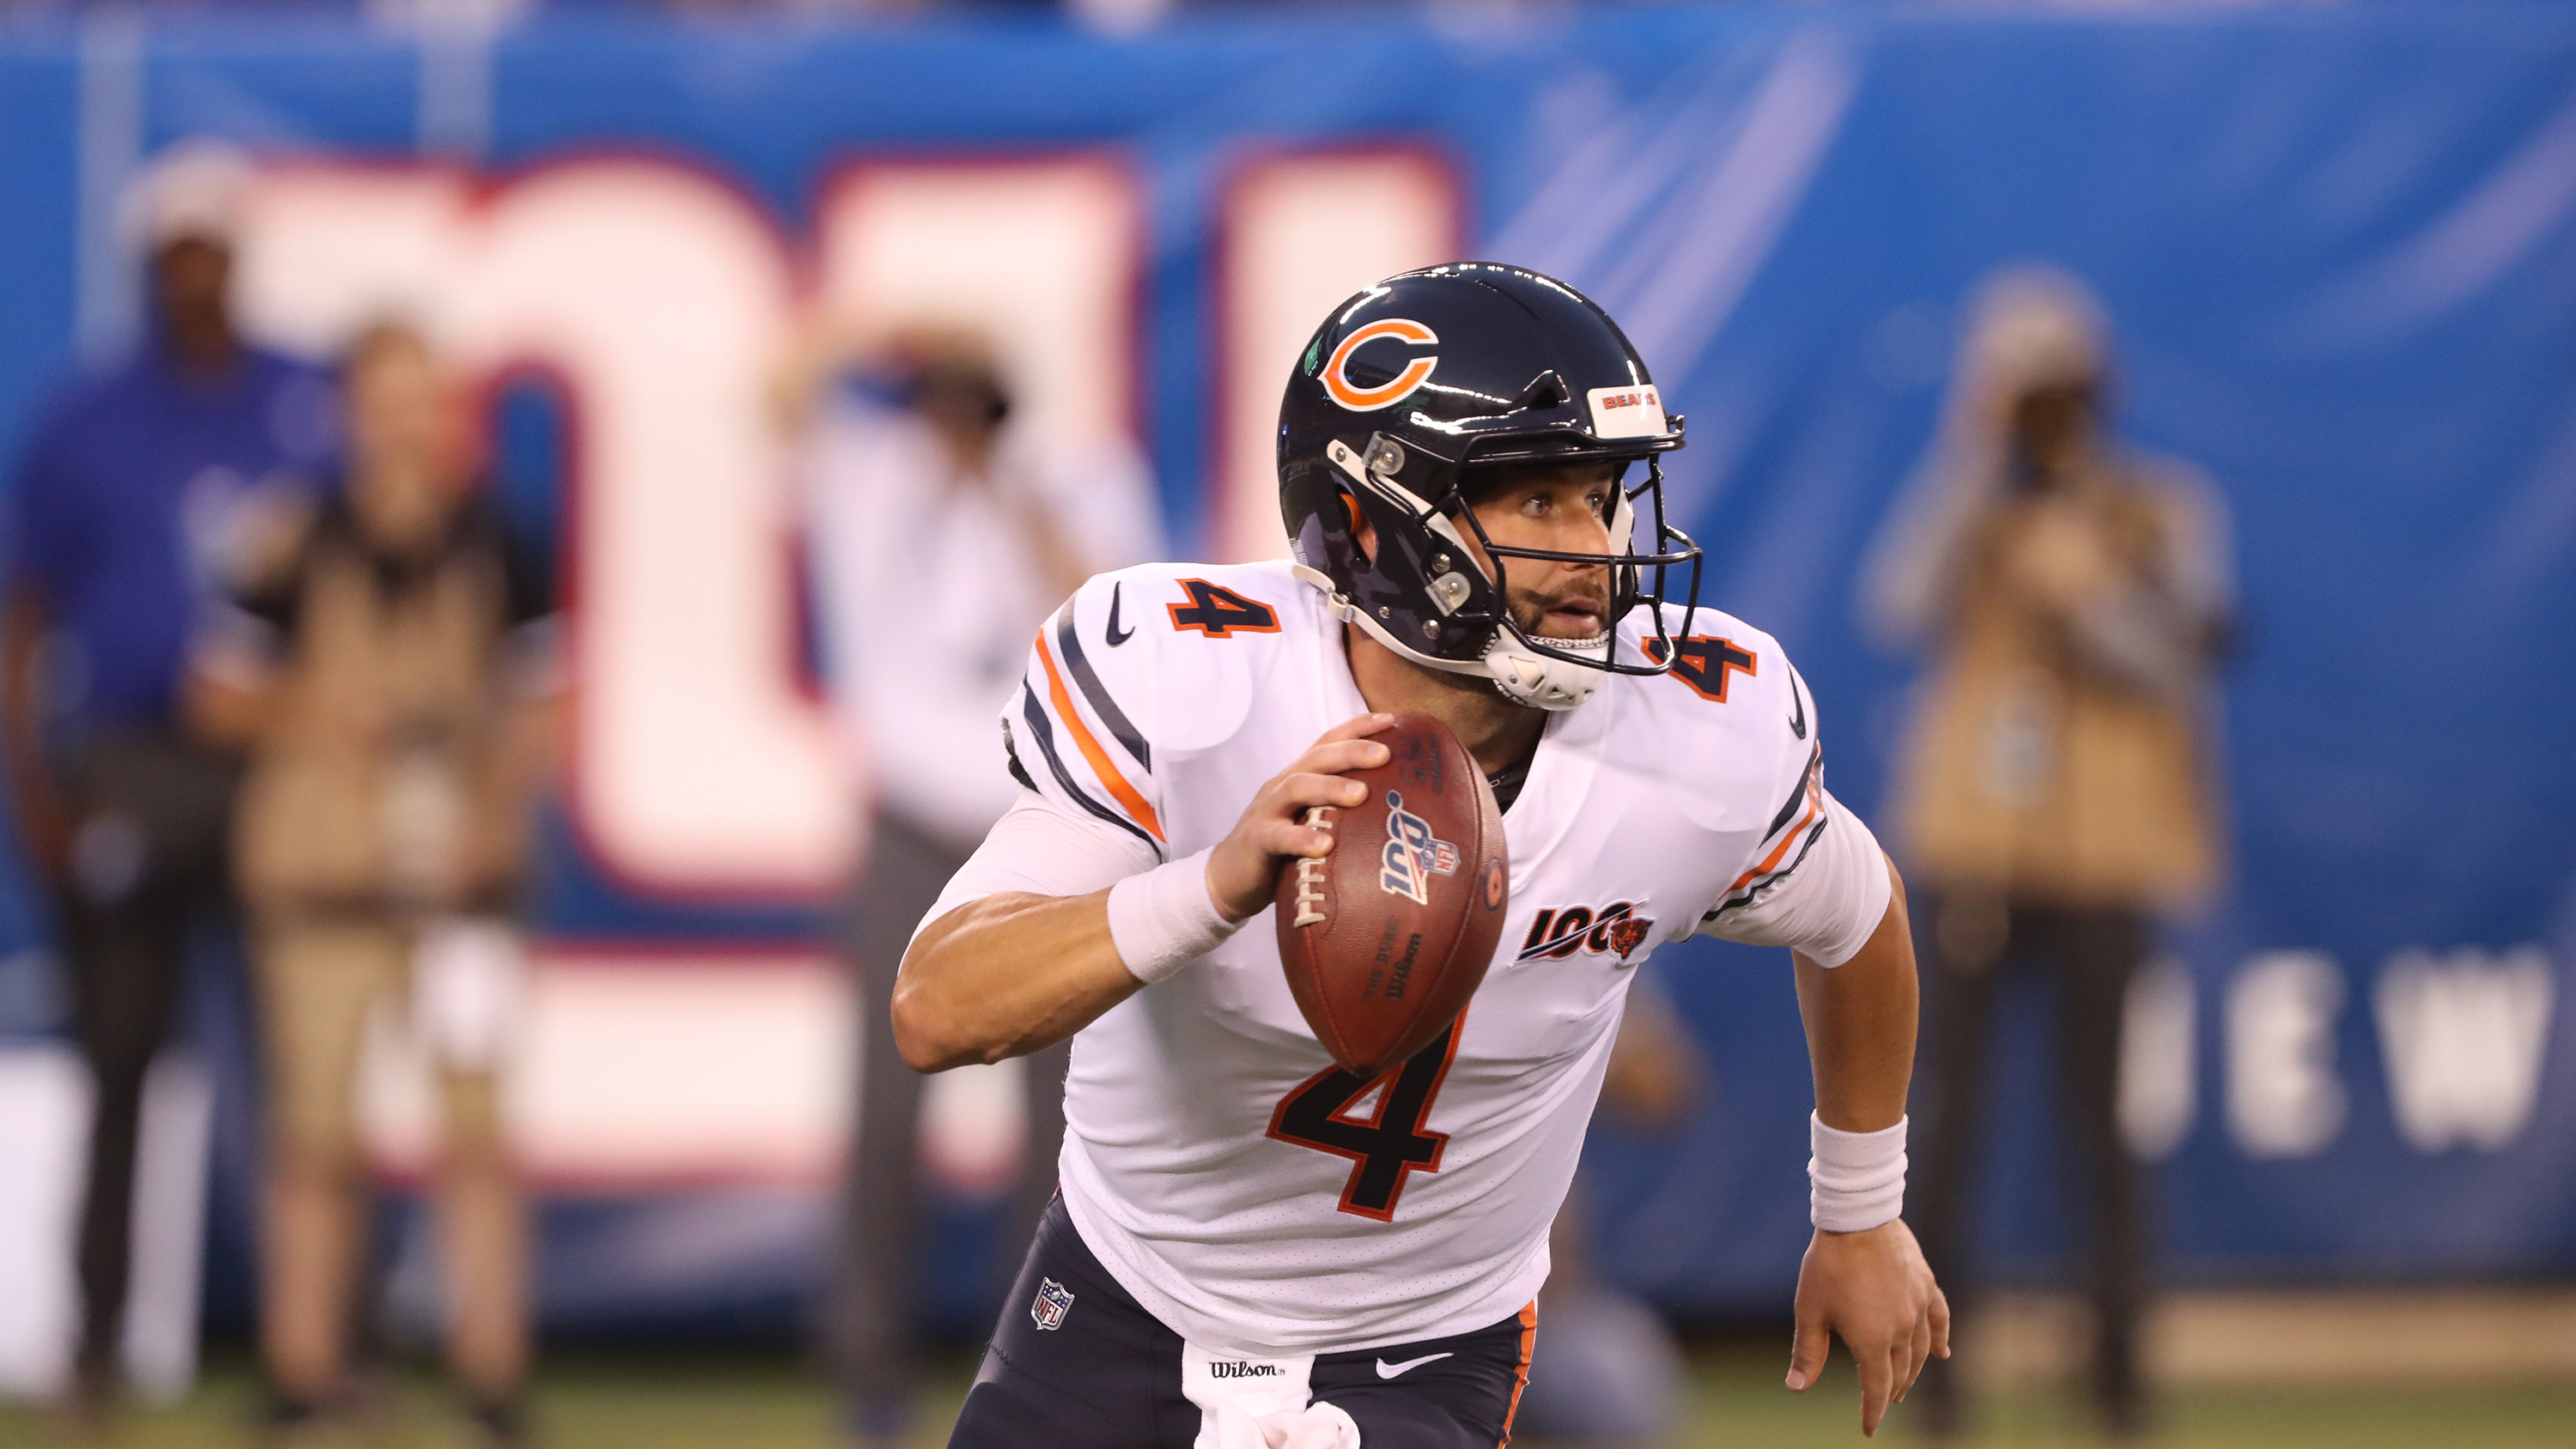 Do Bears have worst backup quarterback situation in NFL?